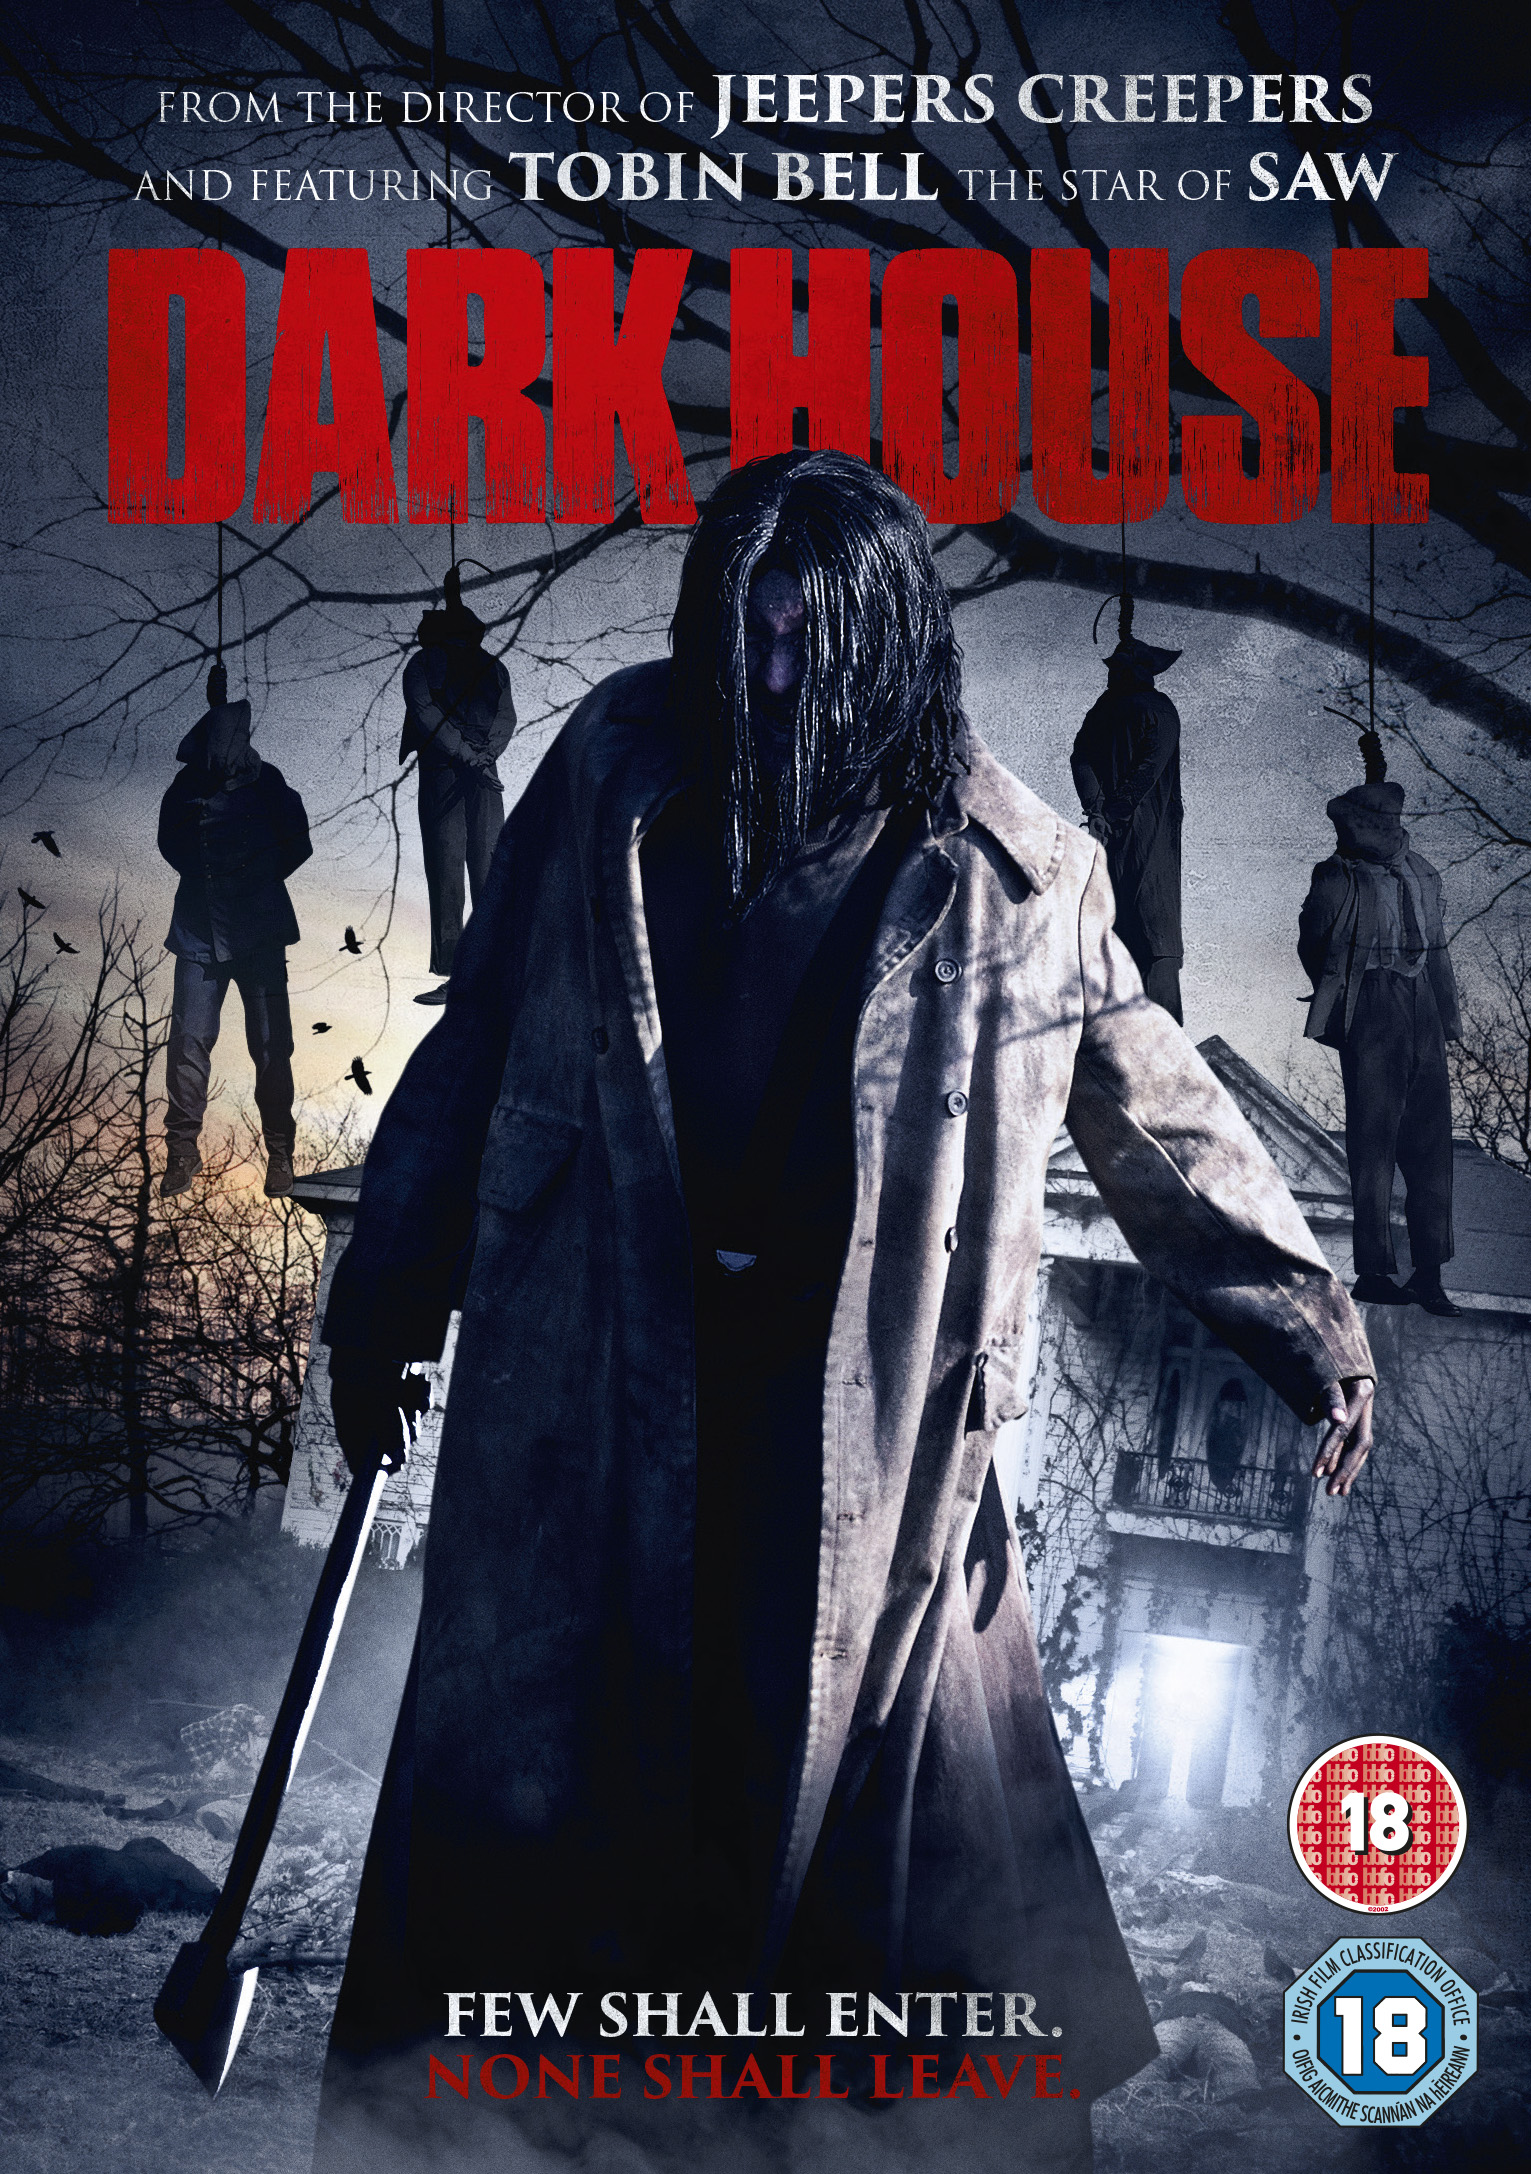 Dark House DVD review